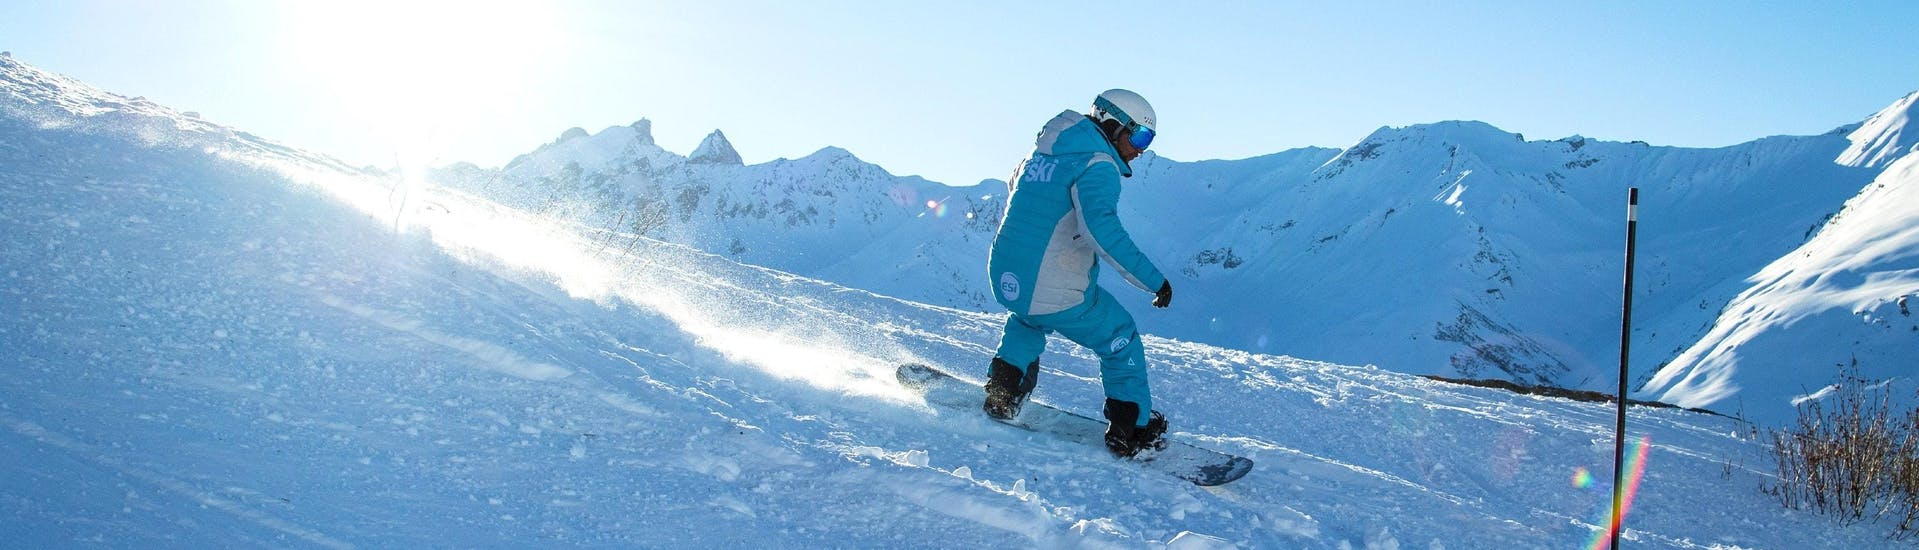 A snowboarder is sliding down a slope during his Private Snowboarding Lessons for All Levels - Morning with the ski school ESI Ski Family in Val Thorens.